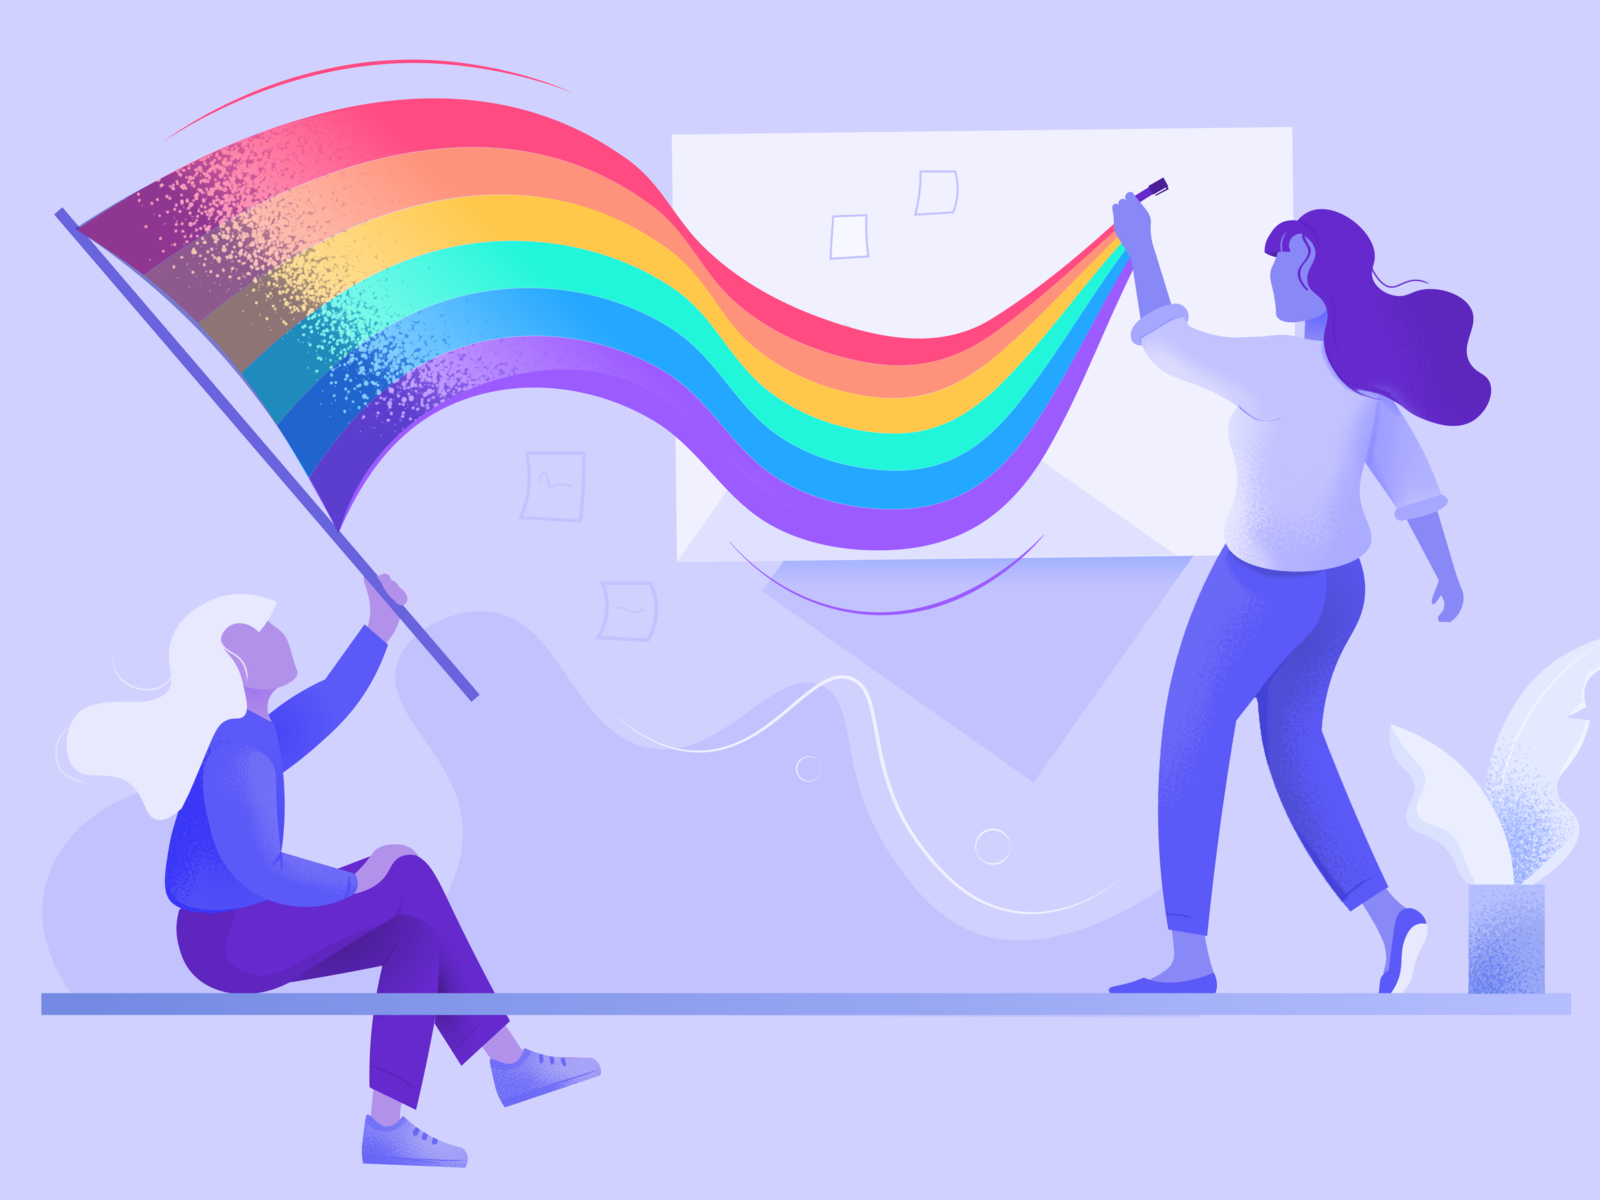 #Pride Inspiration: Celebrating #PrideMonth with hand-picked designs from Dribbble